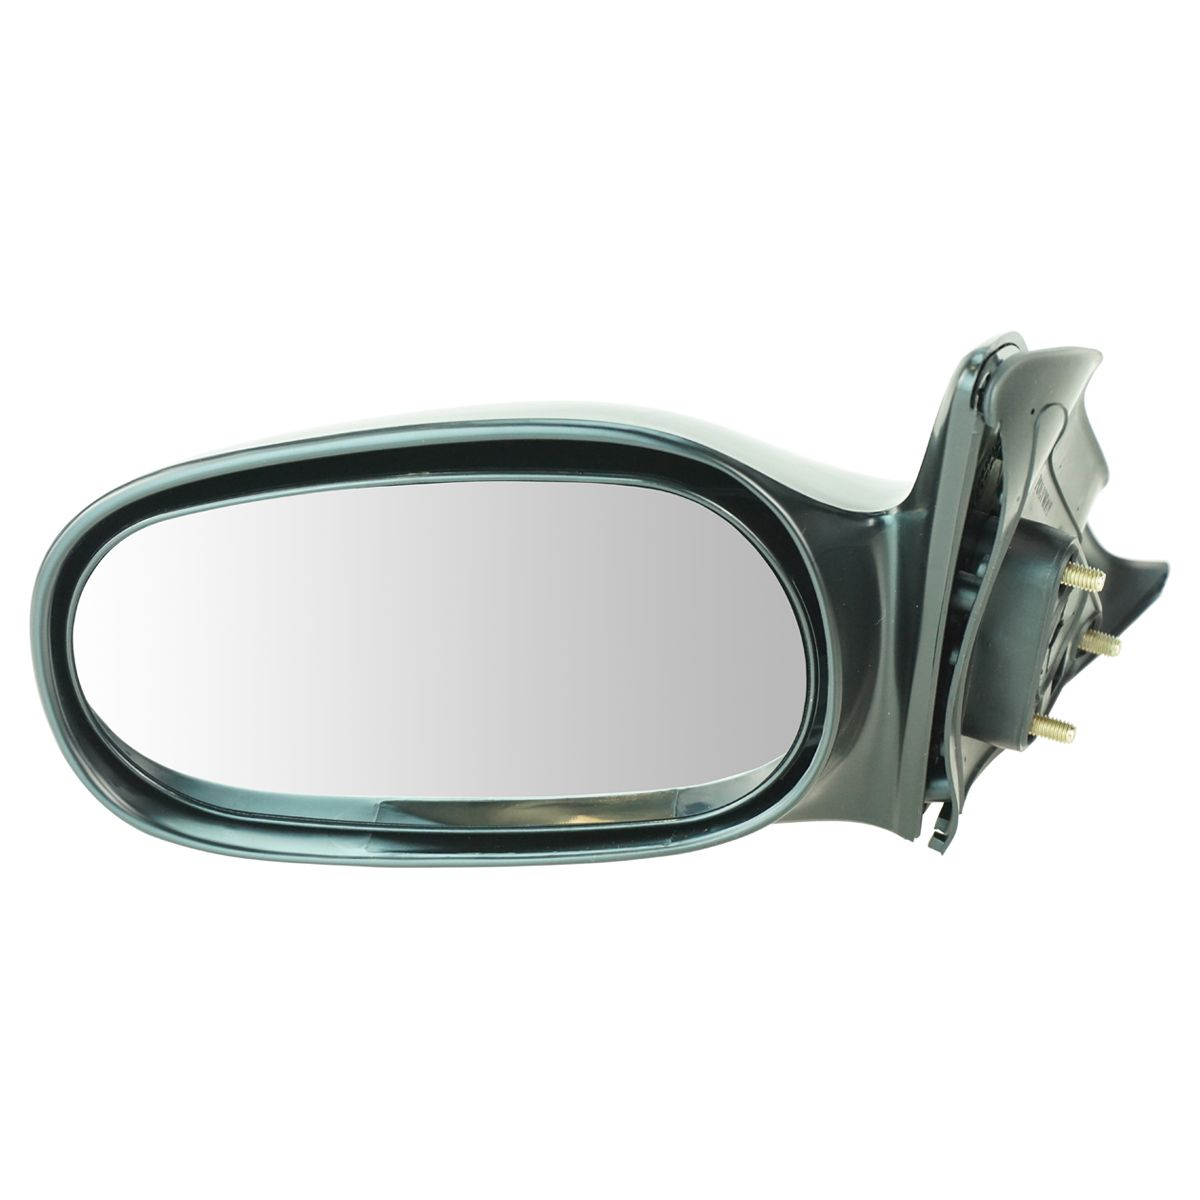 Manual Side View Mirrors Left /& Right Pair Set for 98-02 Toyota Corolla